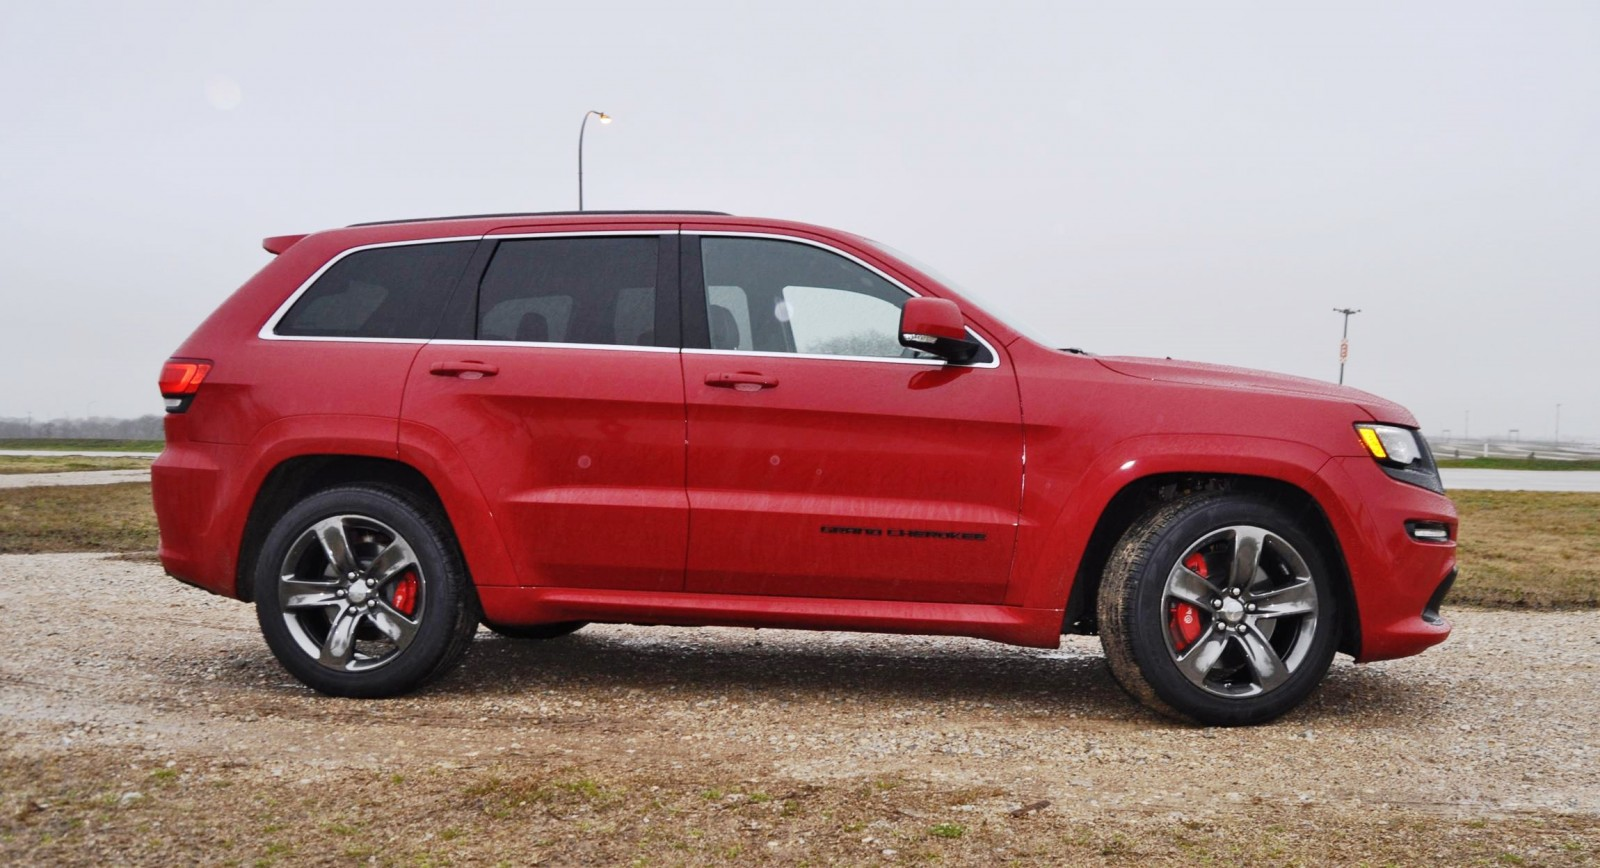 Rainy First Drive Review - 2015 Jeep Grand Cherokee SRT on ...